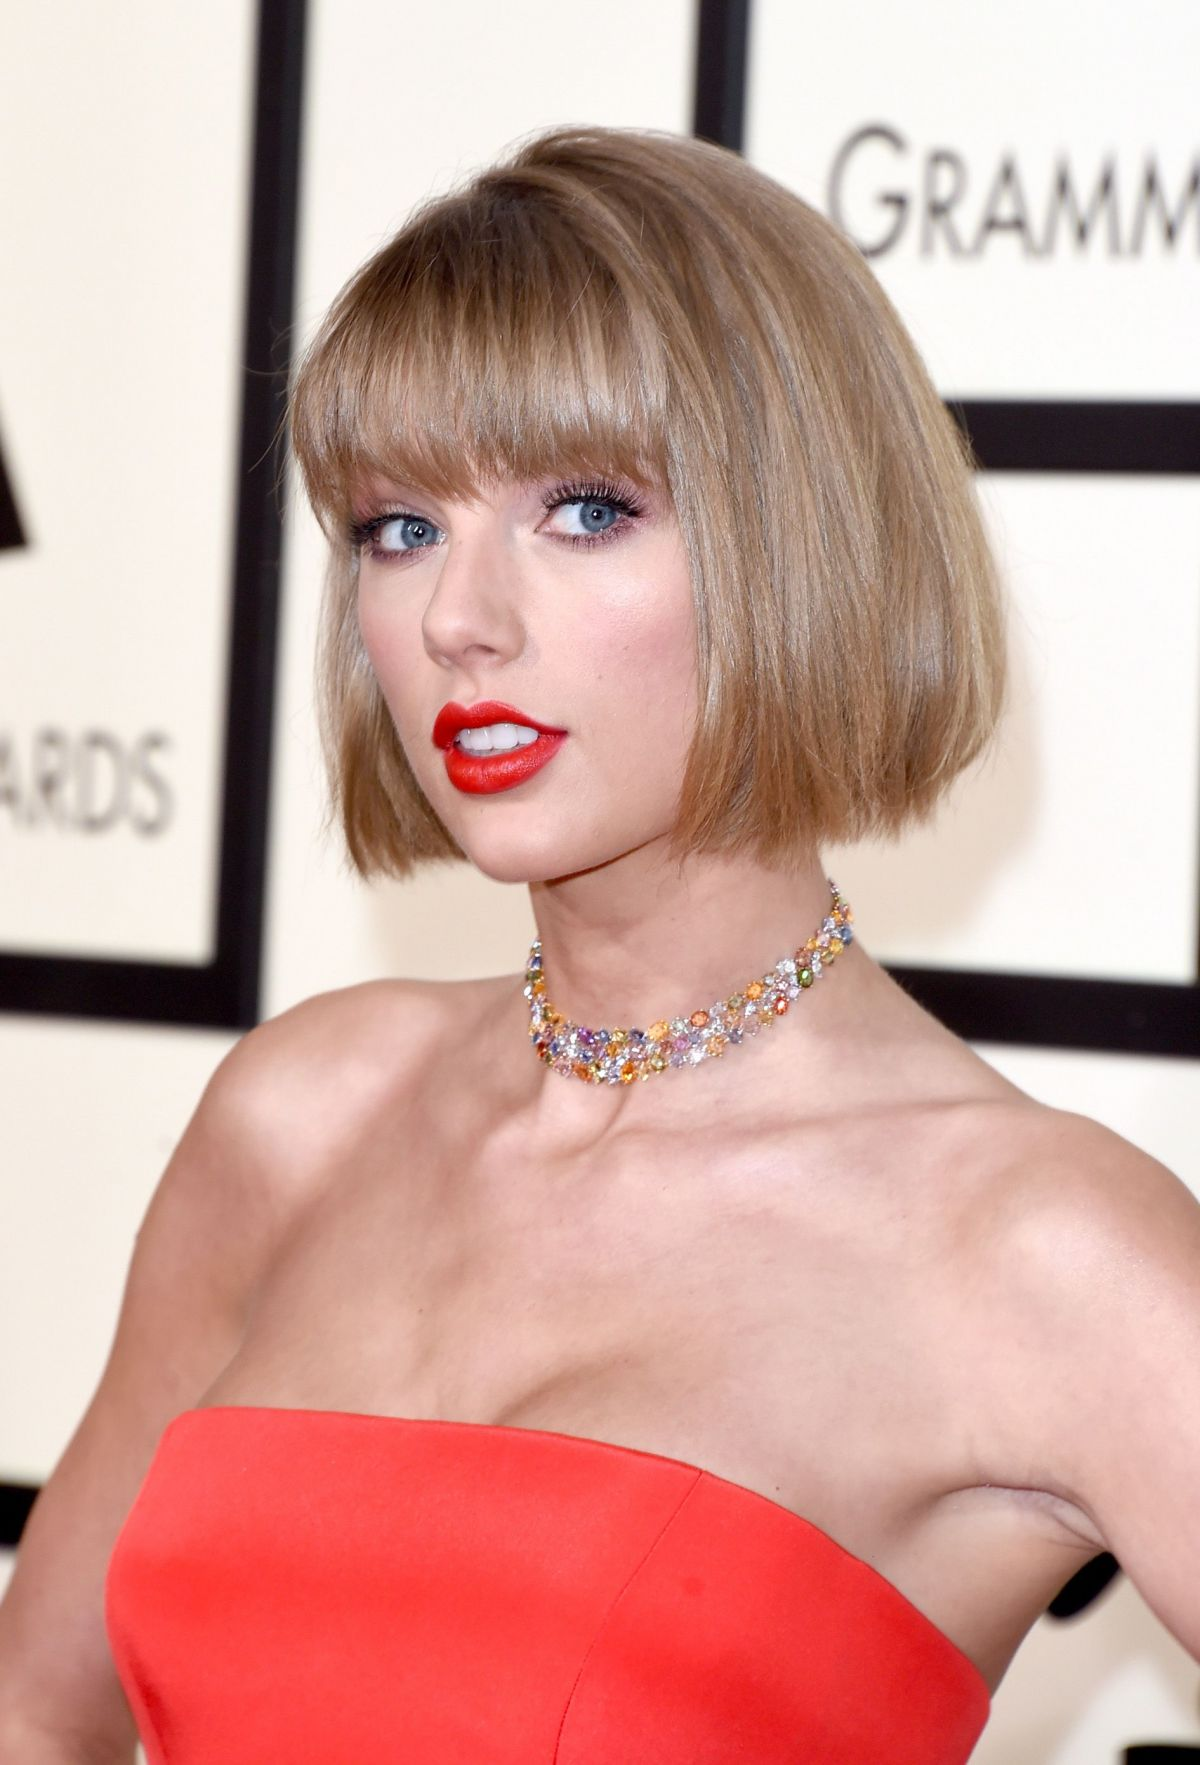 TAYLOR SWIFT at Grammy Awards 2016 in Los Angeles 02/15 ... Taylor Swift